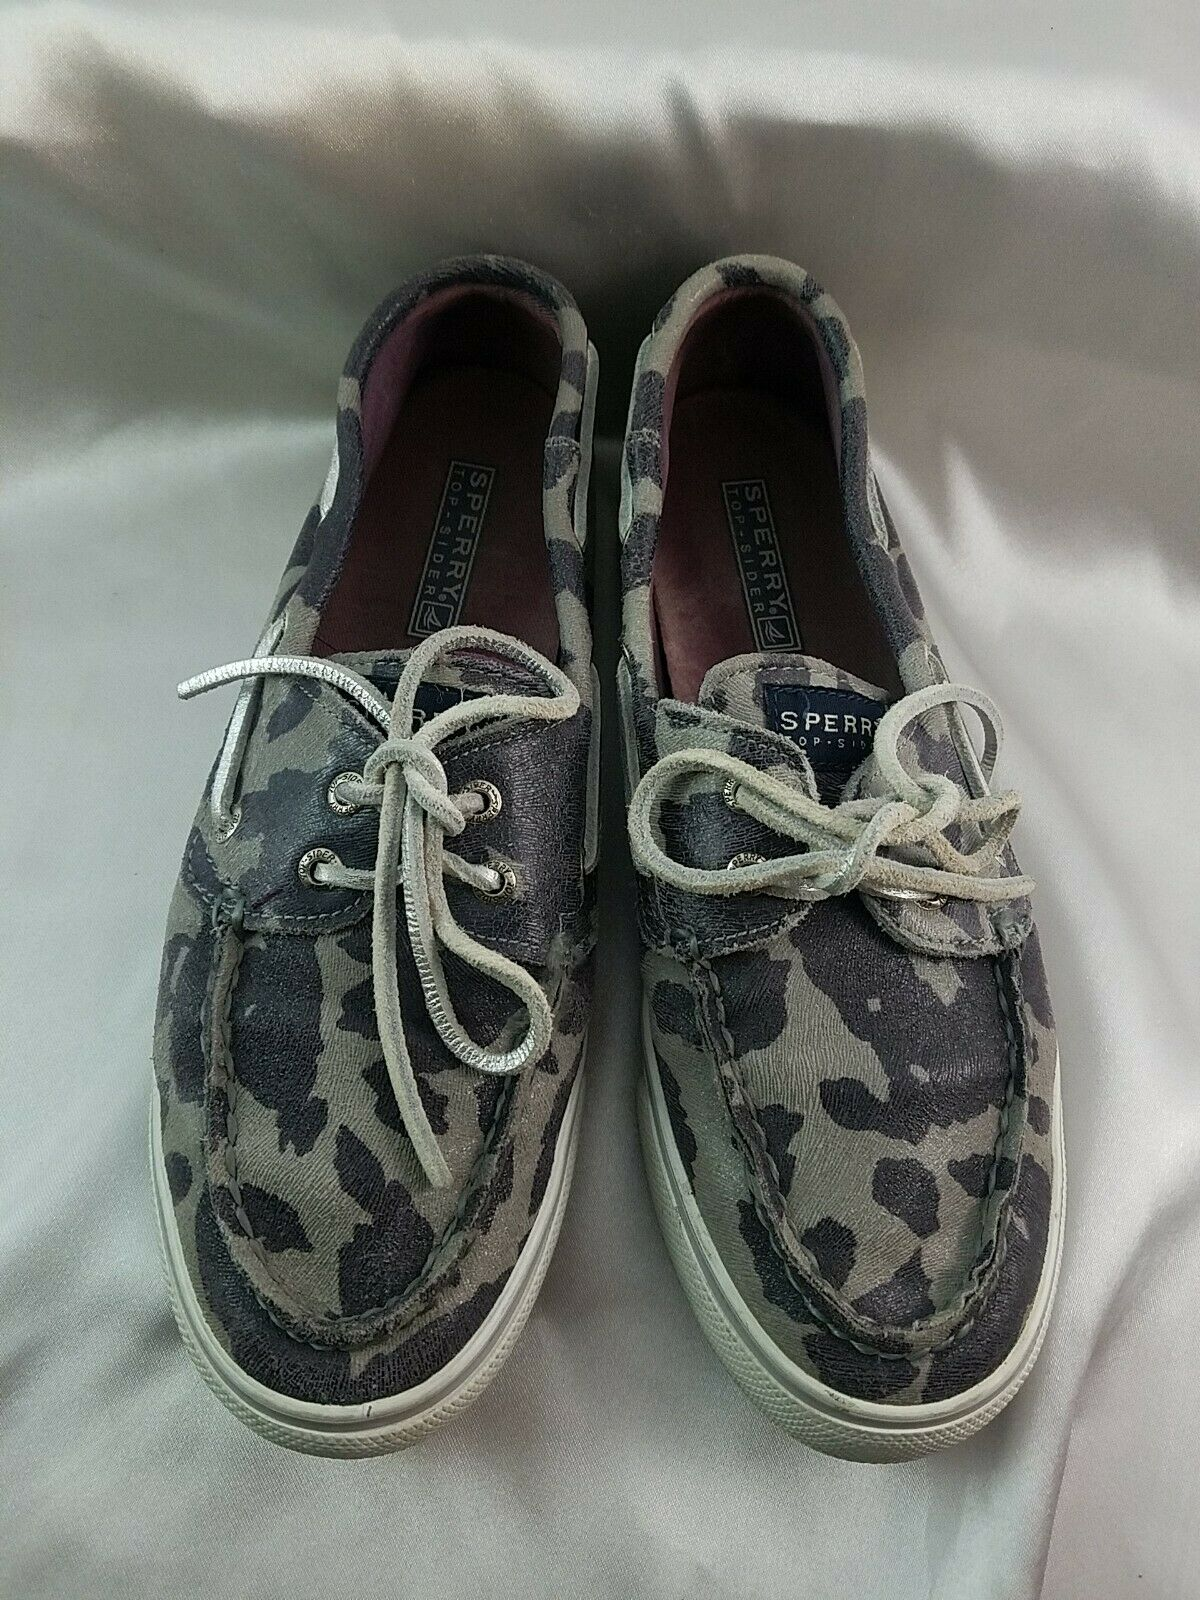 Sperry Top Sider Boat Shoes Leather Multi Gray Cheetah Print Women's 7.5M